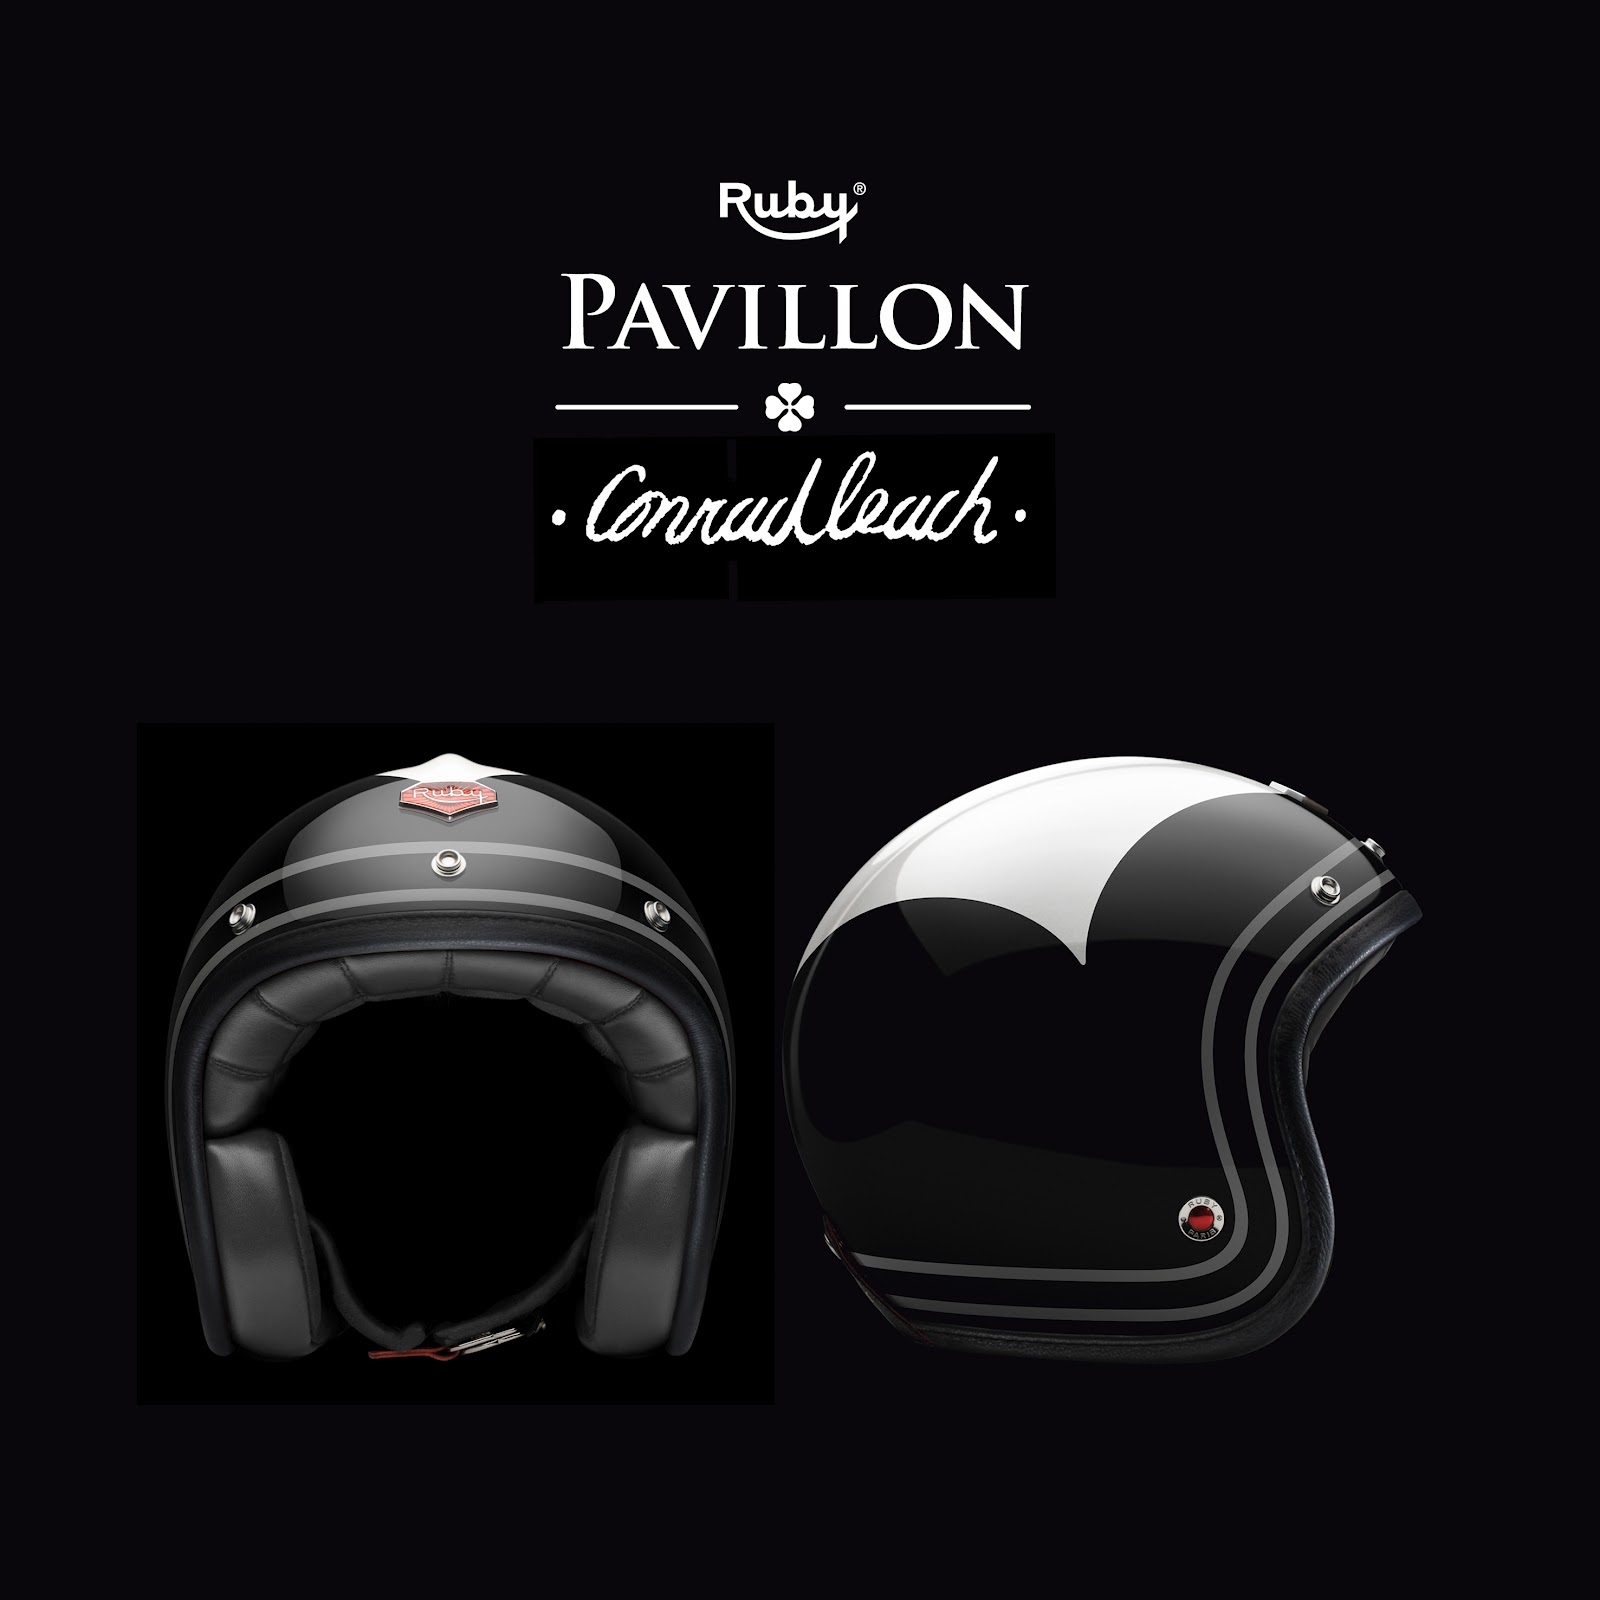 julius ruby pavillon conrad leach open face helmet. Black Bedroom Furniture Sets. Home Design Ideas